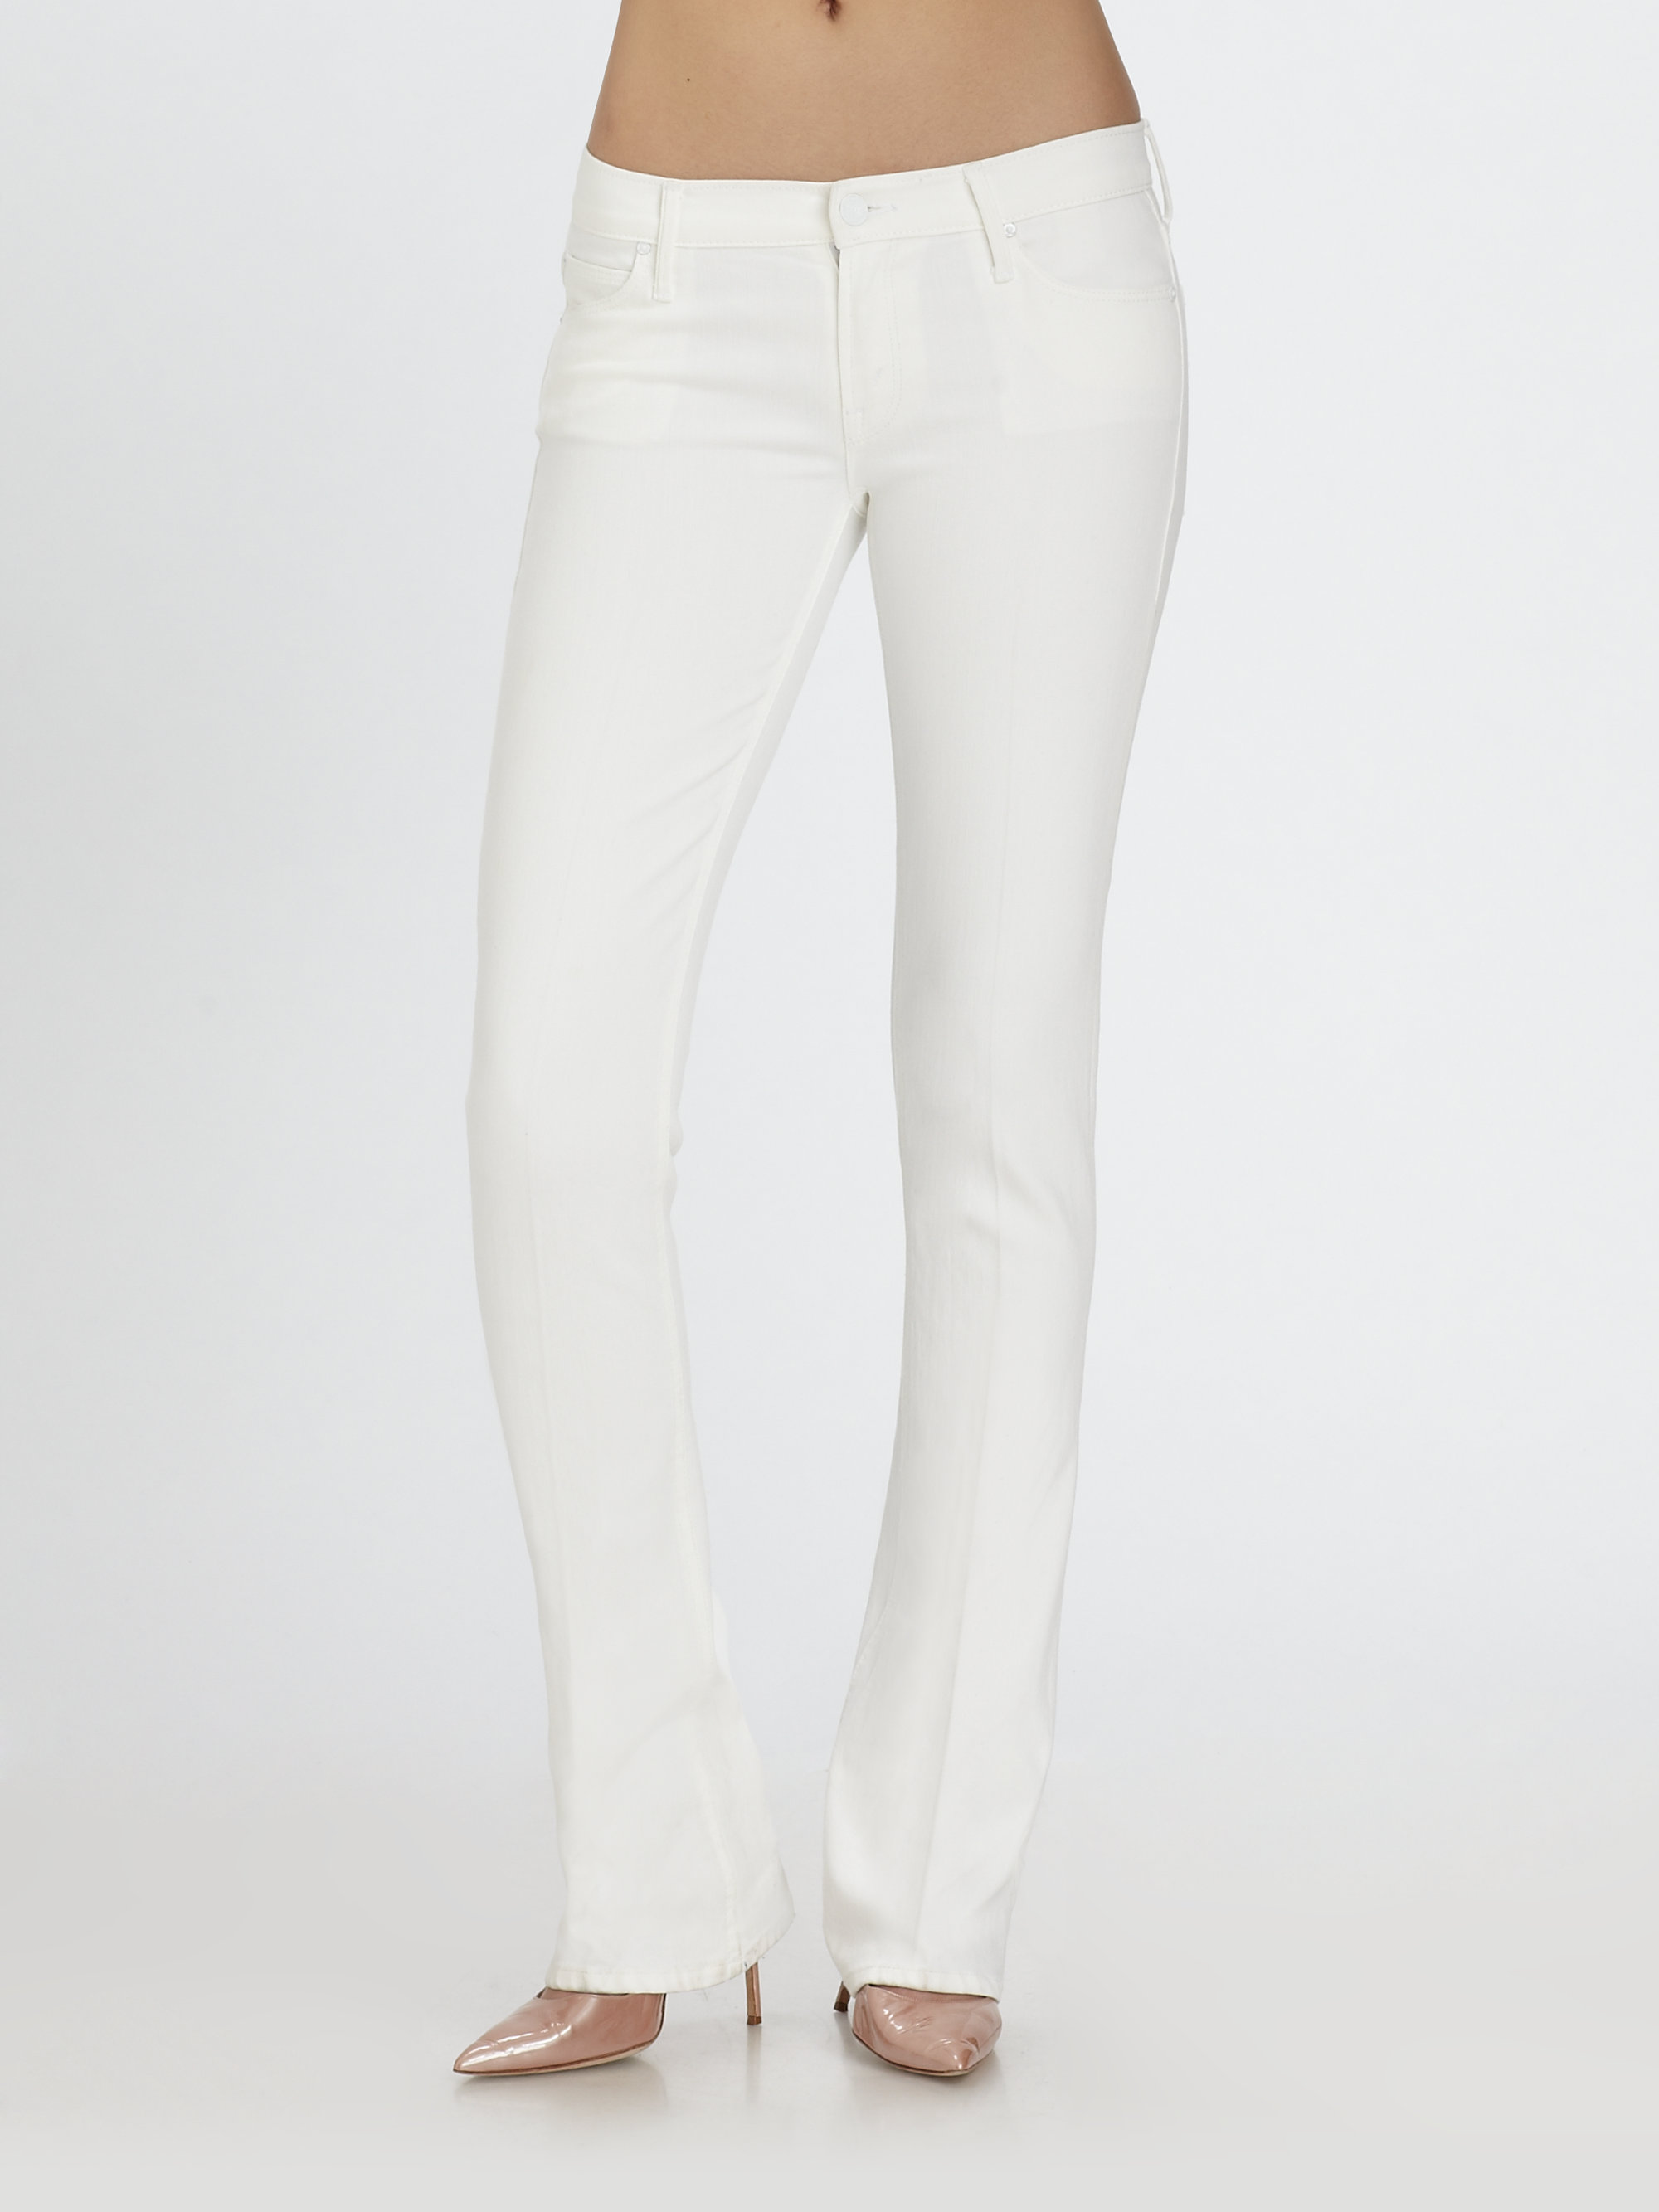 Mother The Runaway Skinny Flare Jeans in White | Lyst